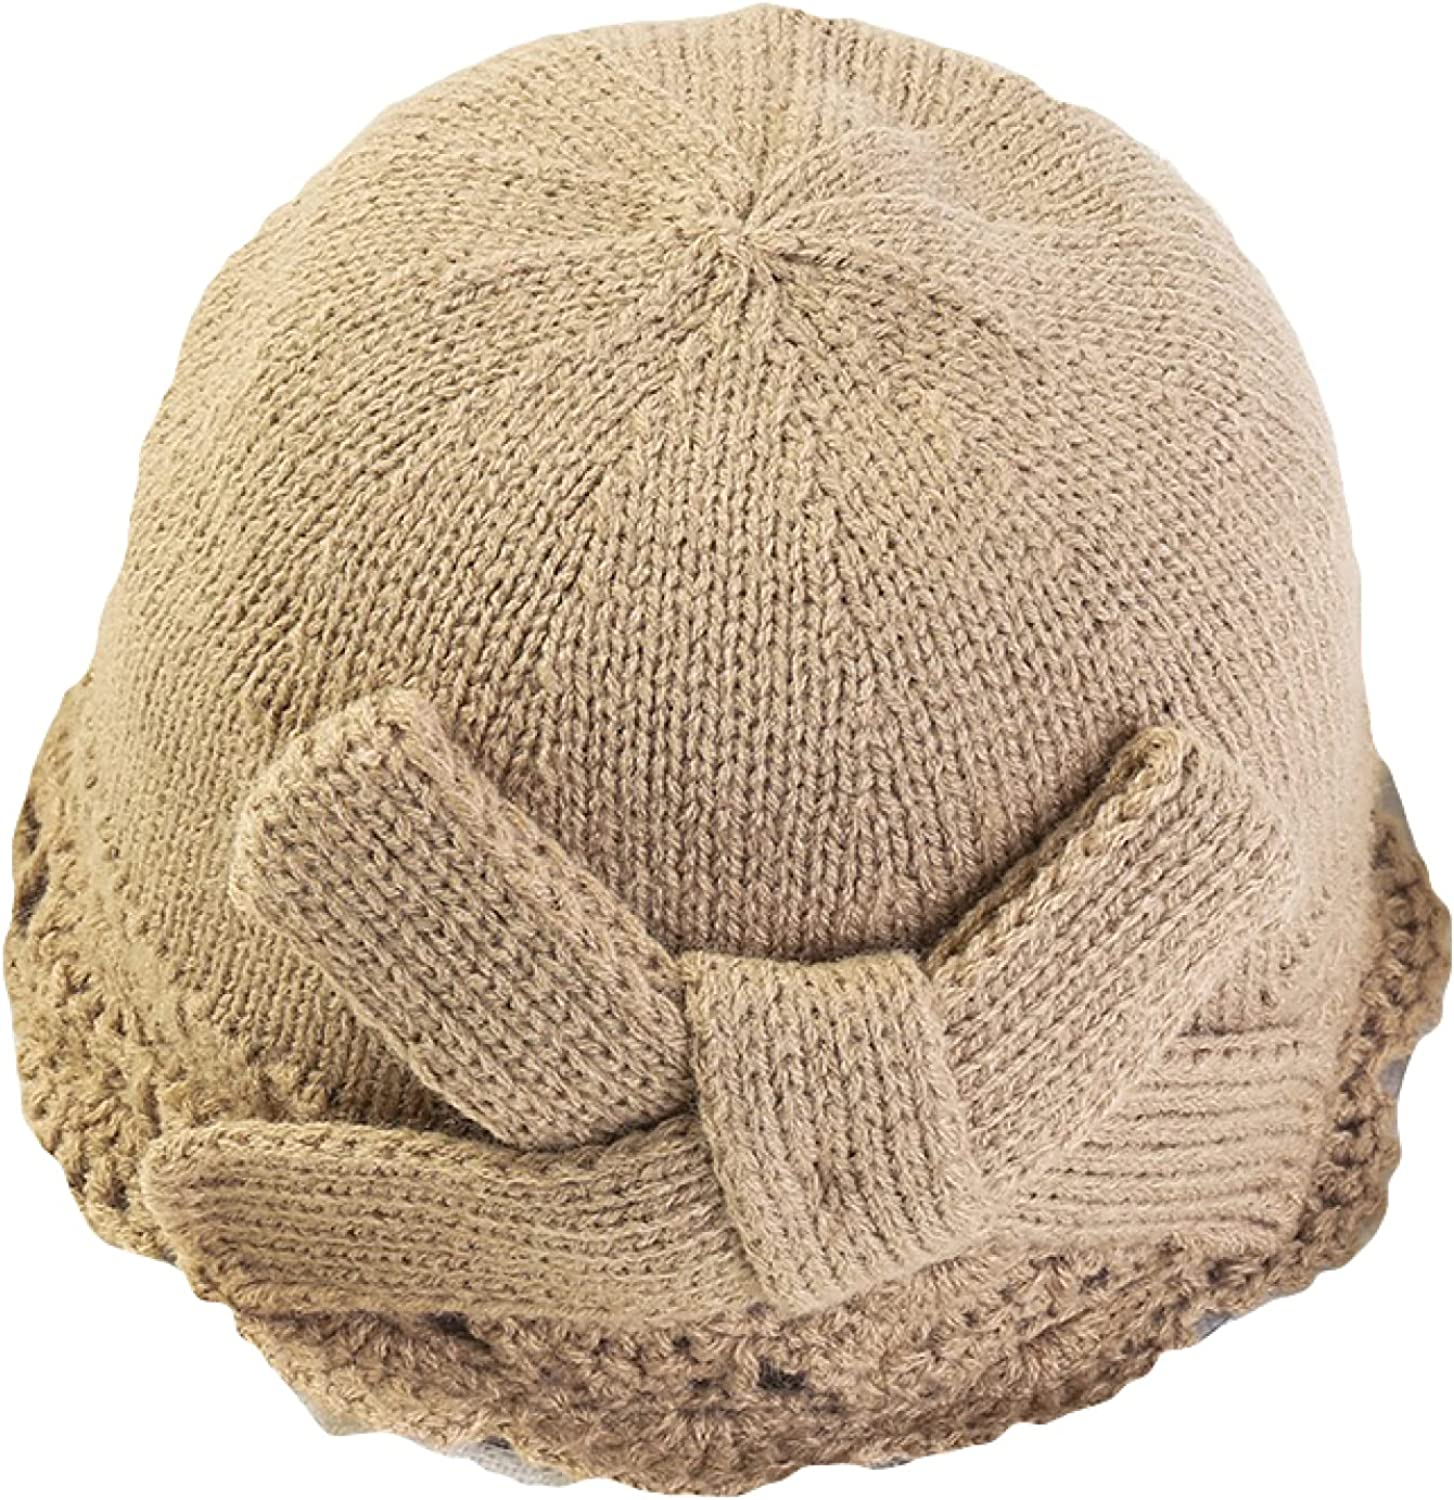 AOBRICON Beret Phoenix Mall Hats for Women Autumn 5% OFF S Ladies Knitted Casual Hat